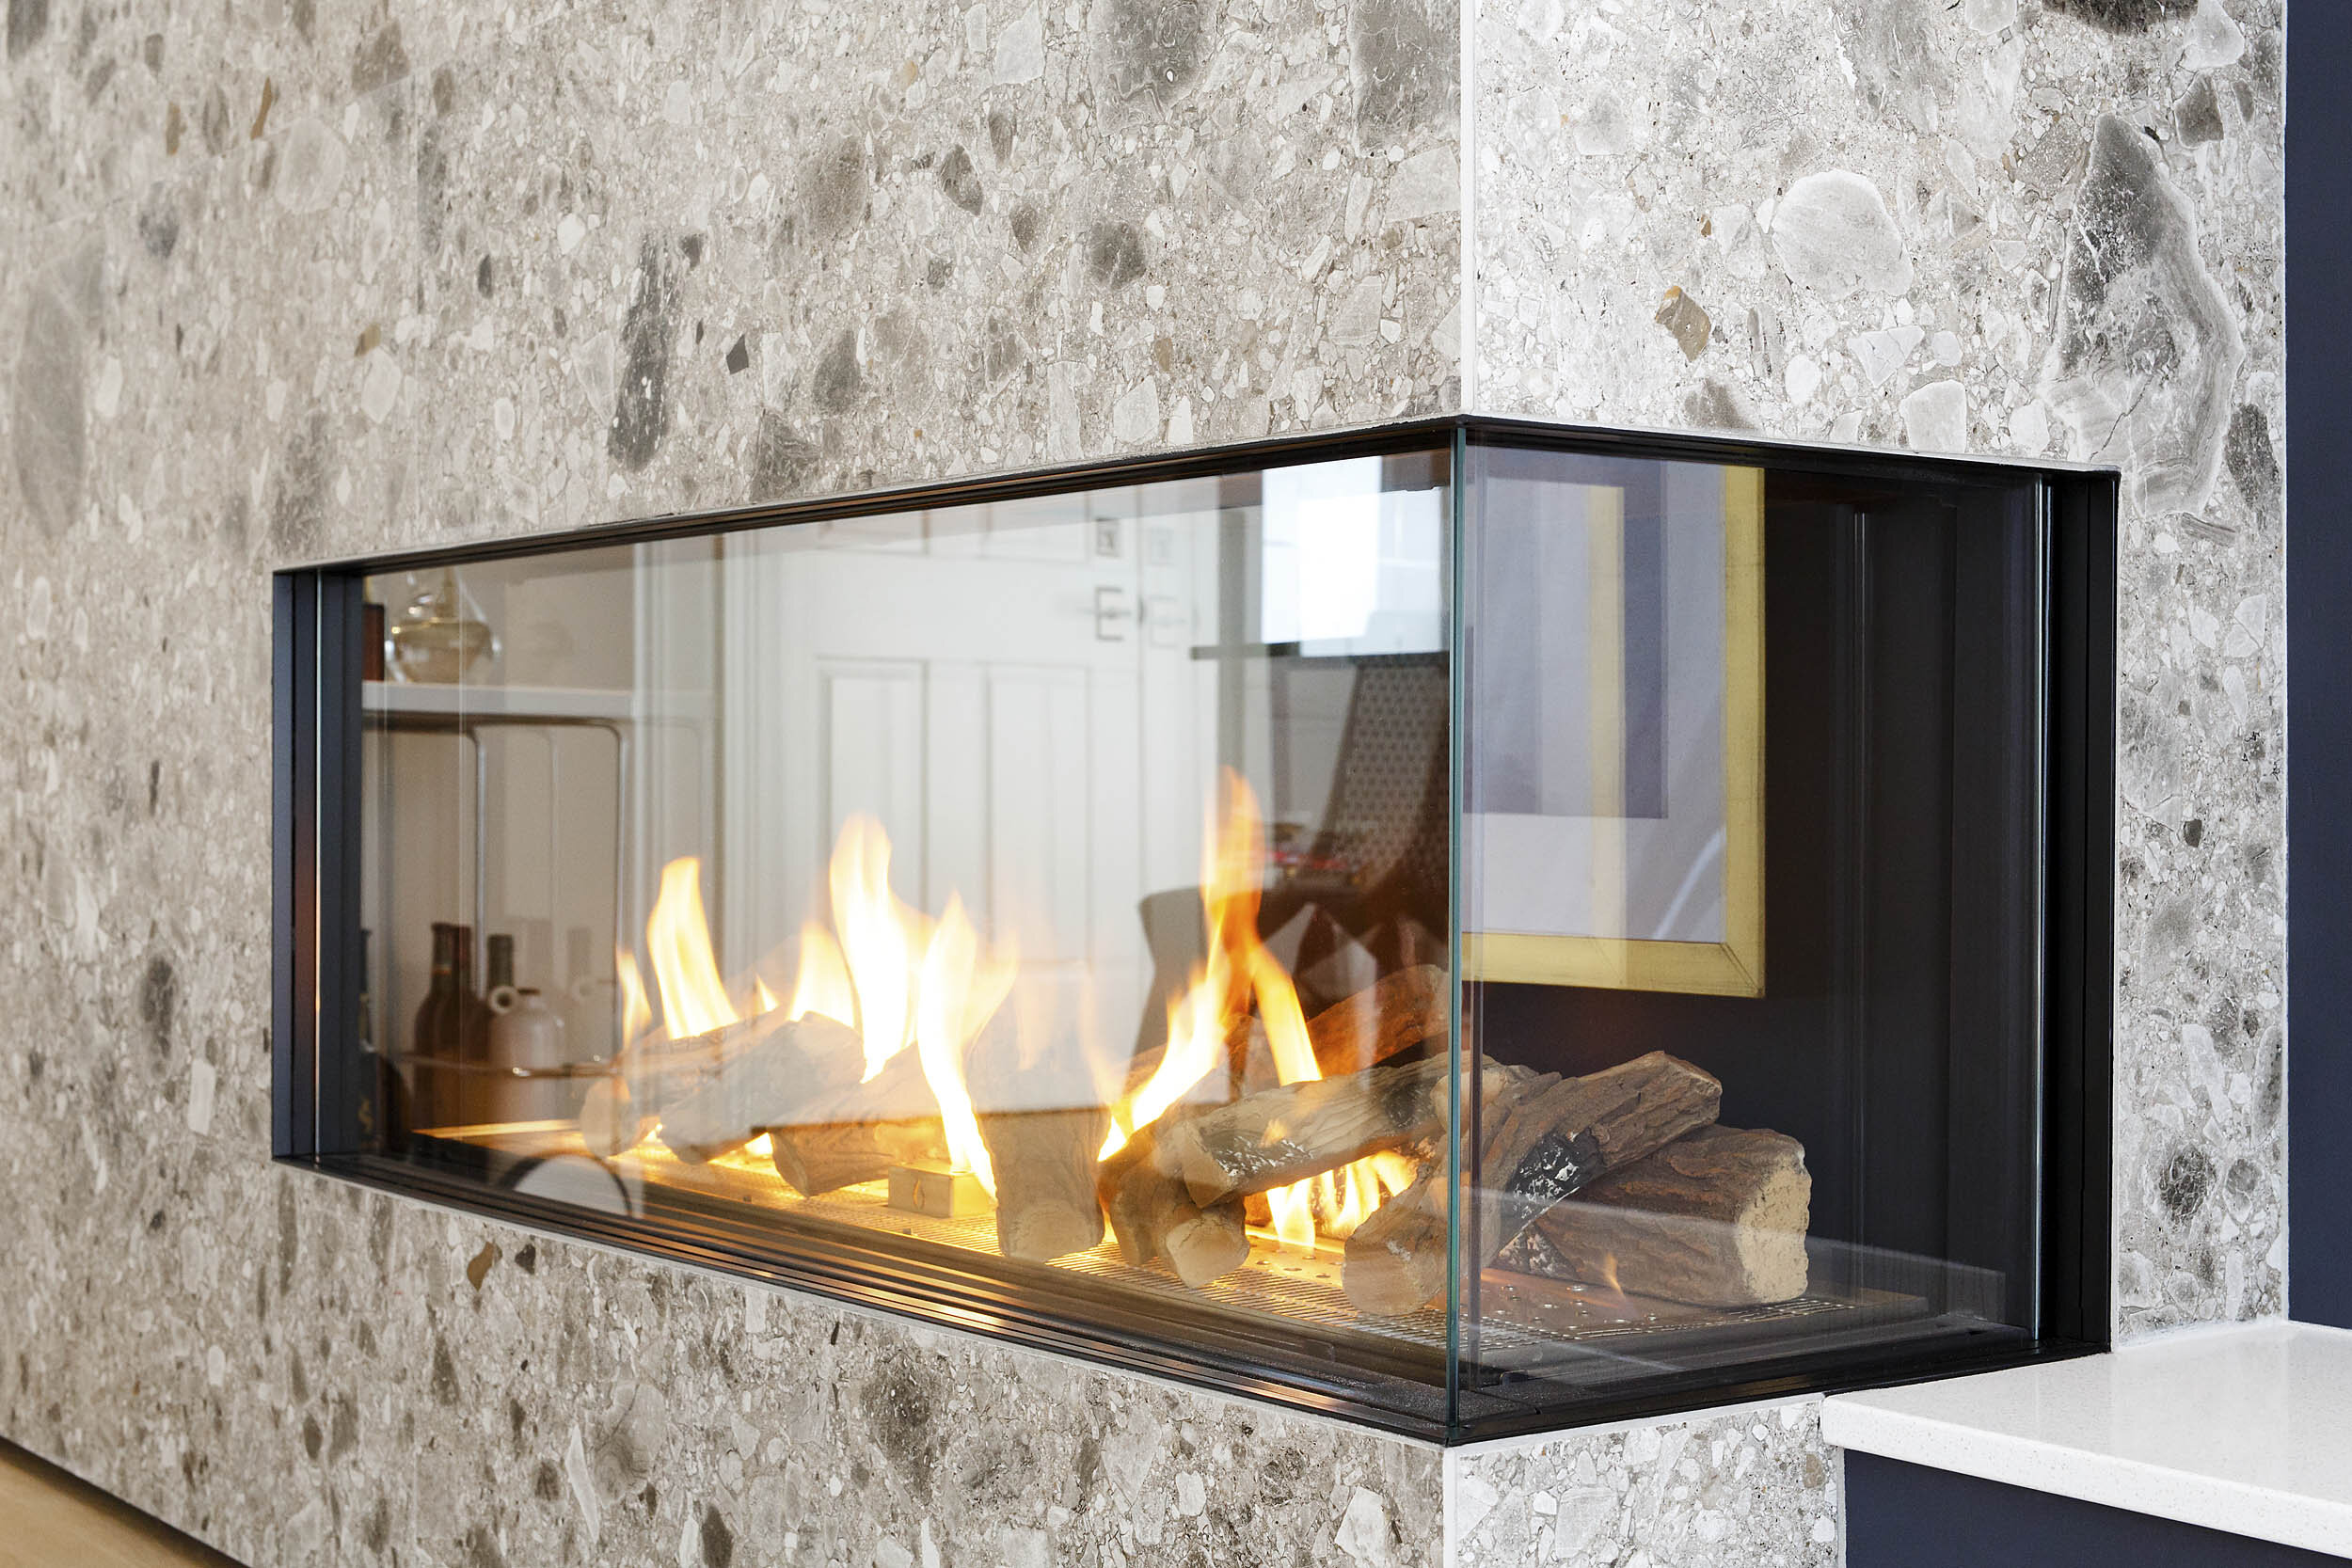 Detail of a Modern Fire Place Residential Interior Photography